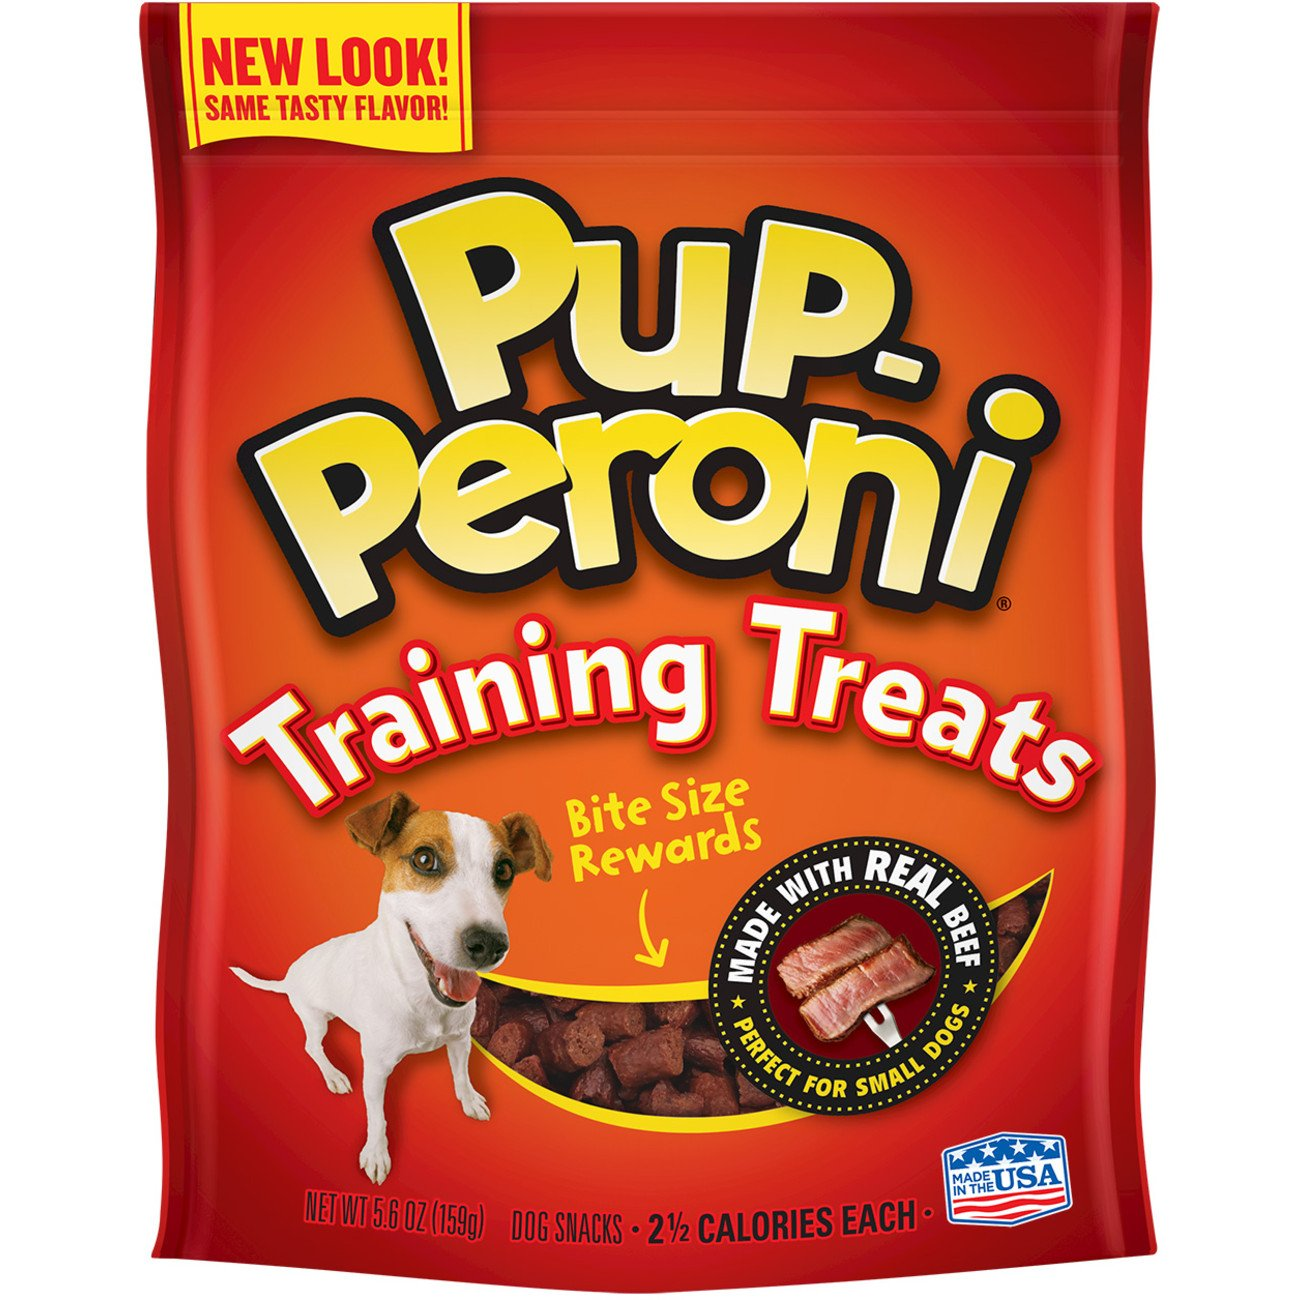 Pup-Peroni Original Training Treats – Beef Flavor Dog Snacks, 5.6-Ounce Pack of 8